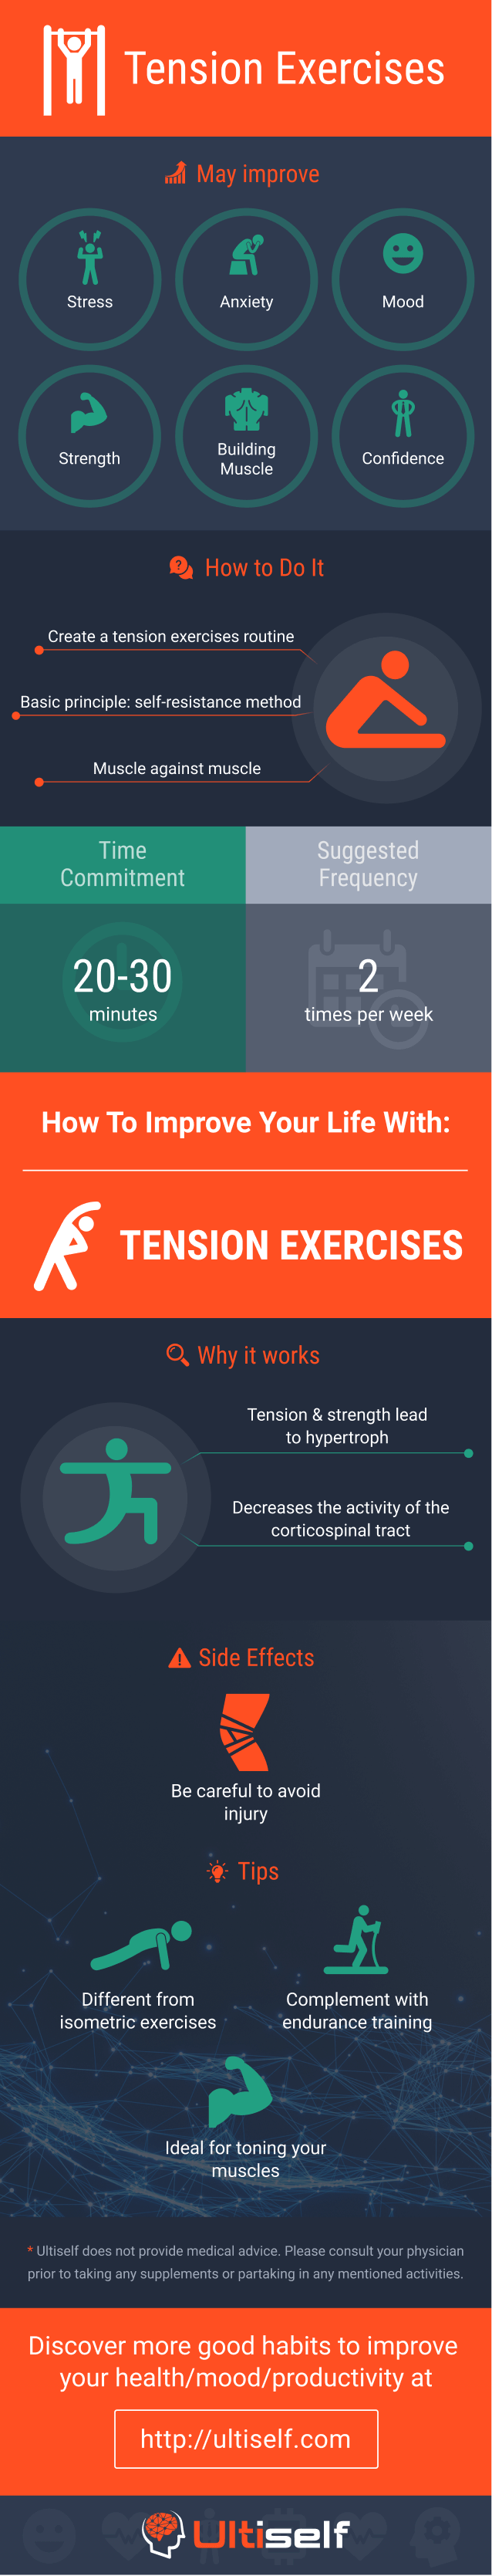 Tension Exercises infographic